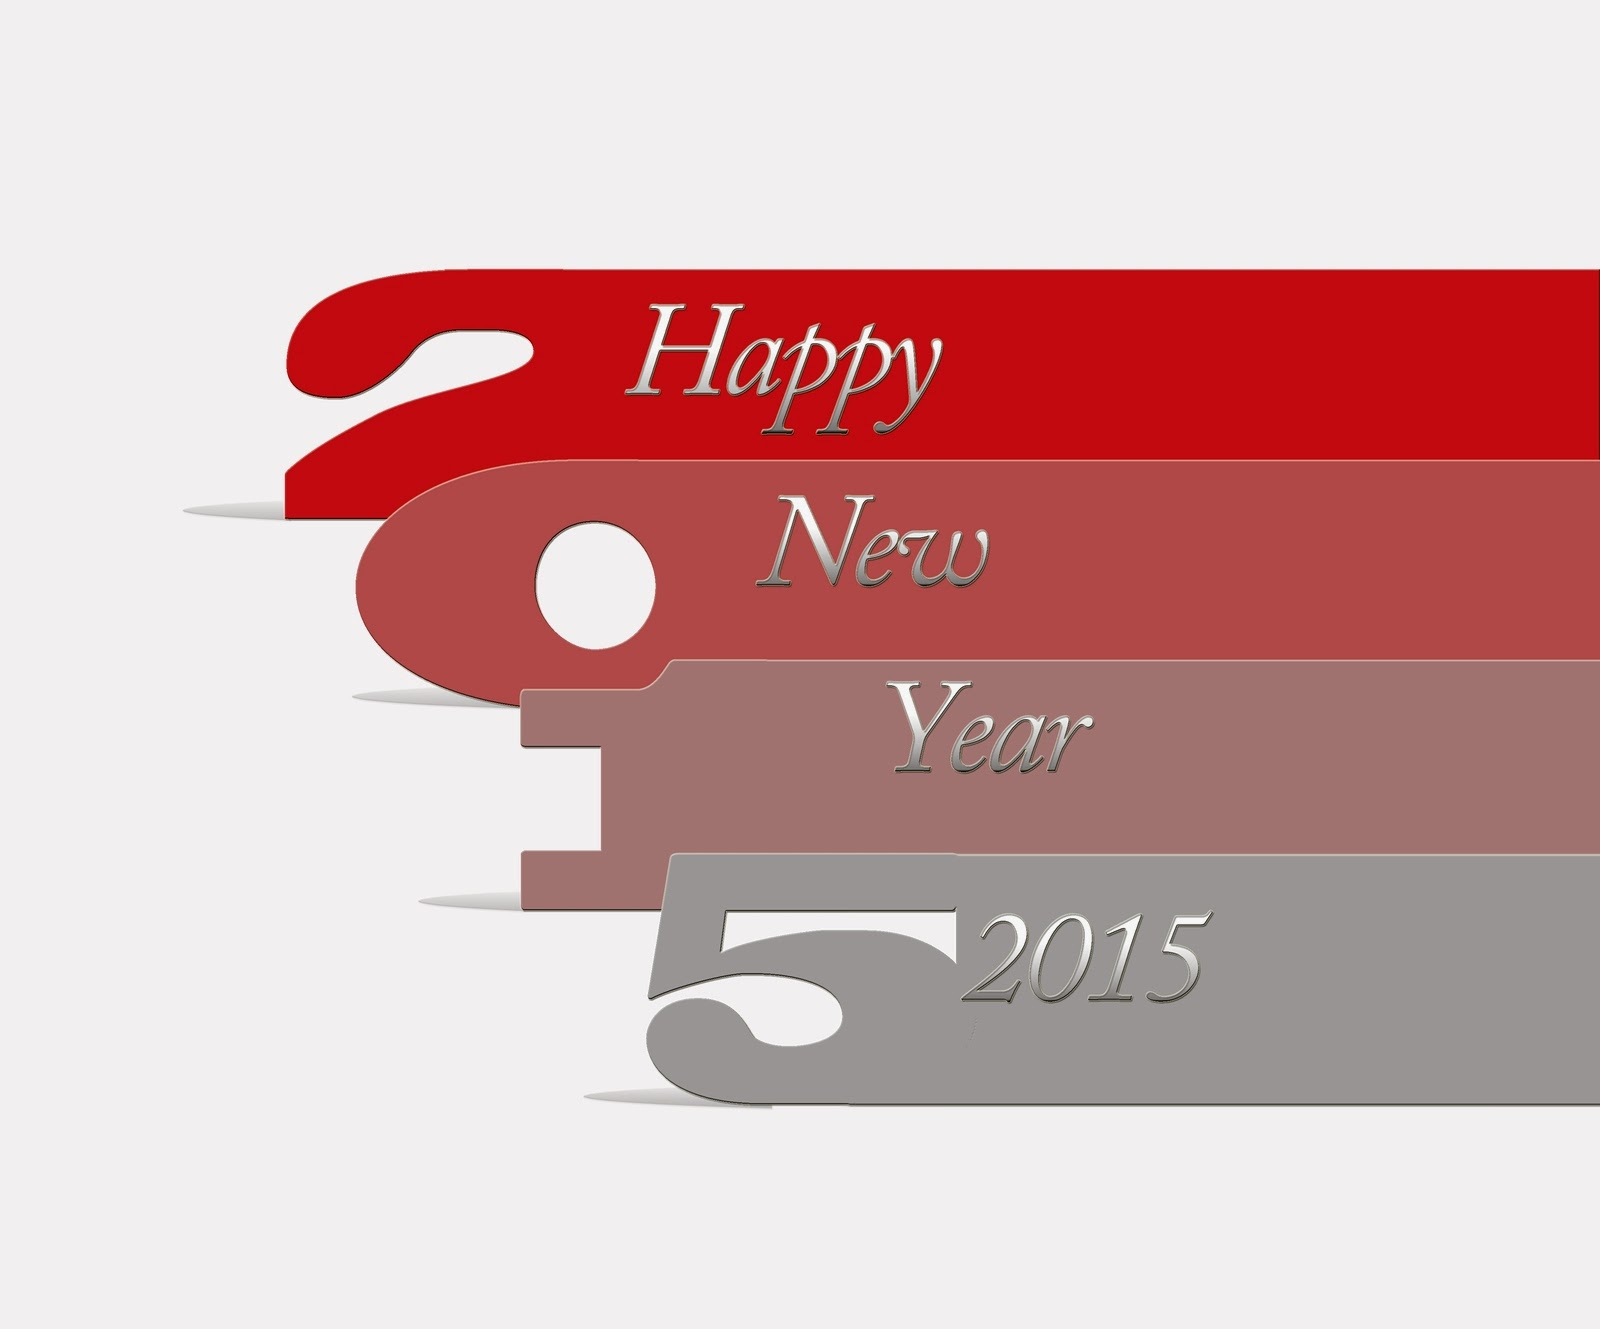 2015 Happy New Year Images Download HD Background Wallpapers 1600x1329